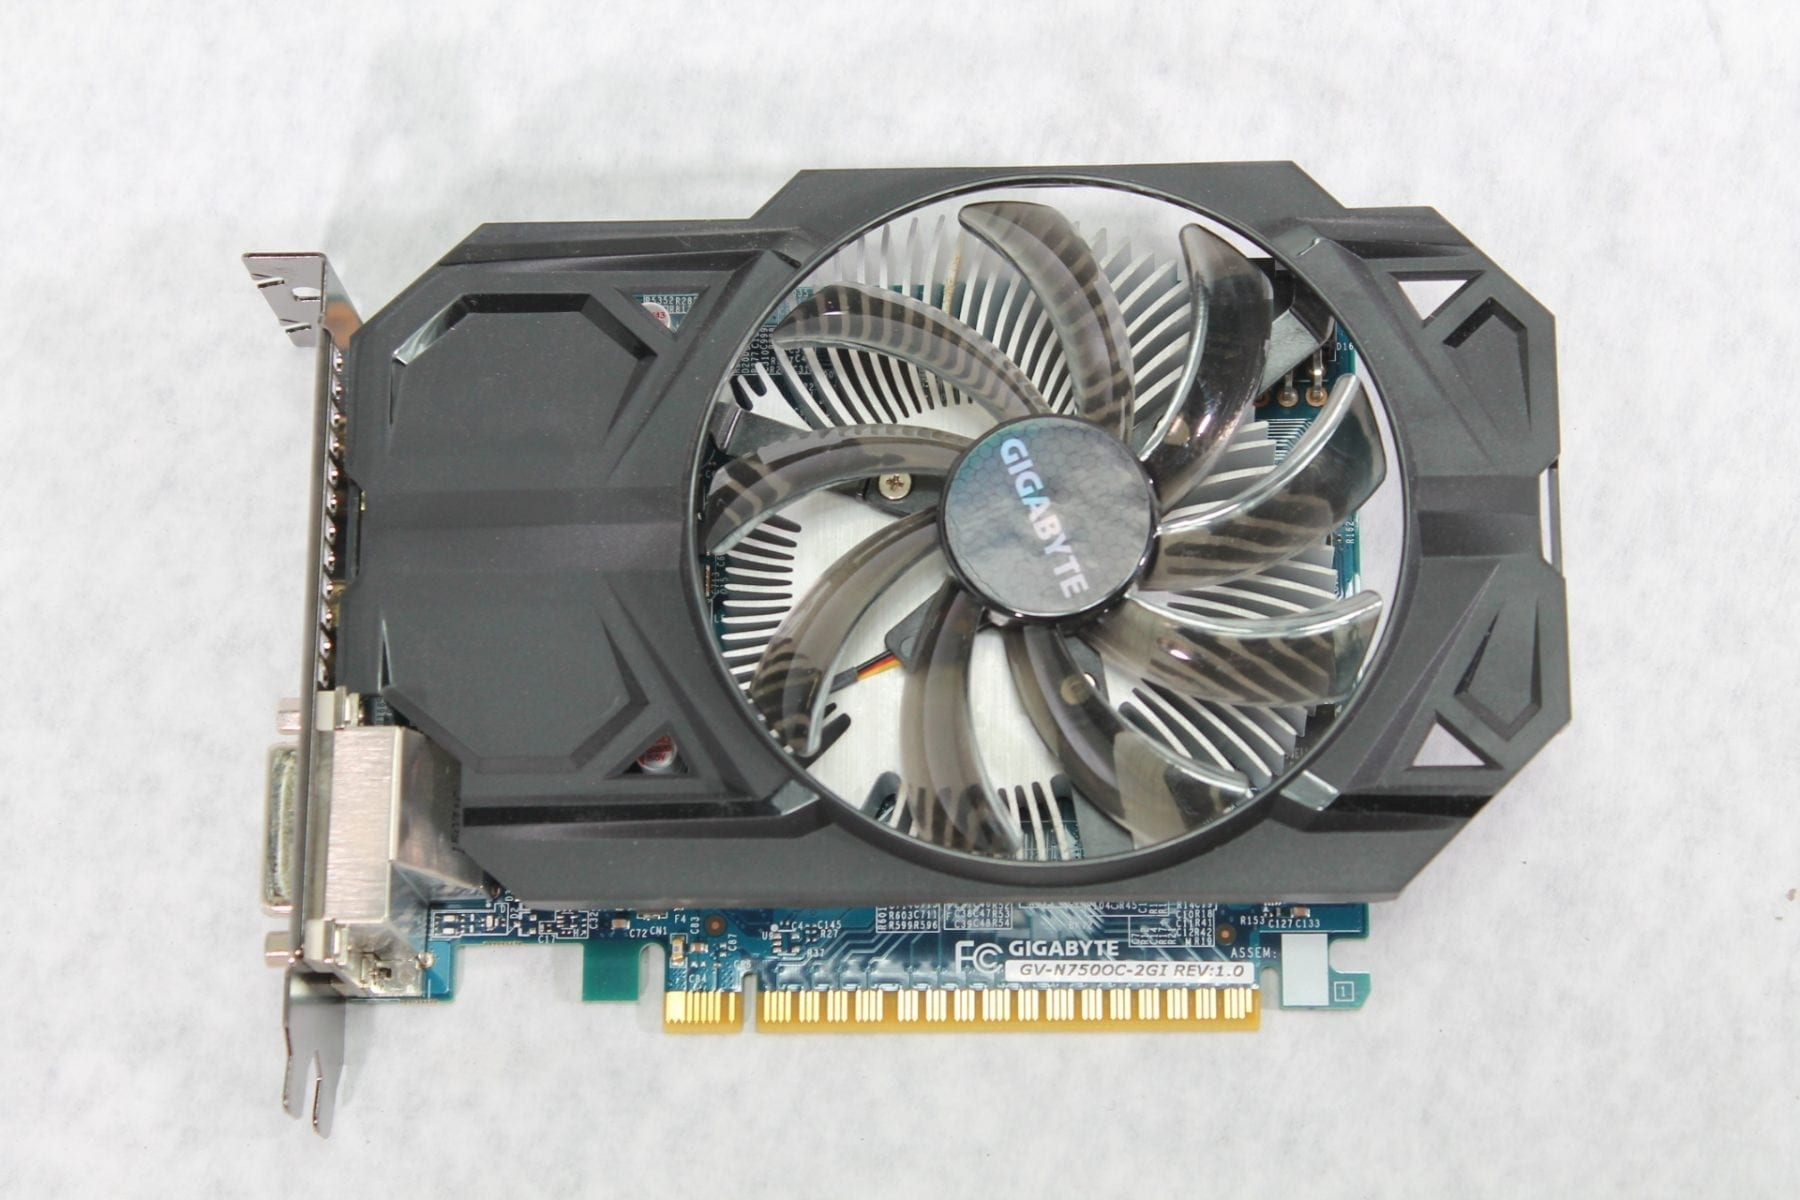 Gigabyte GV-N750OC-2GI Graphics Card AV Gear Main